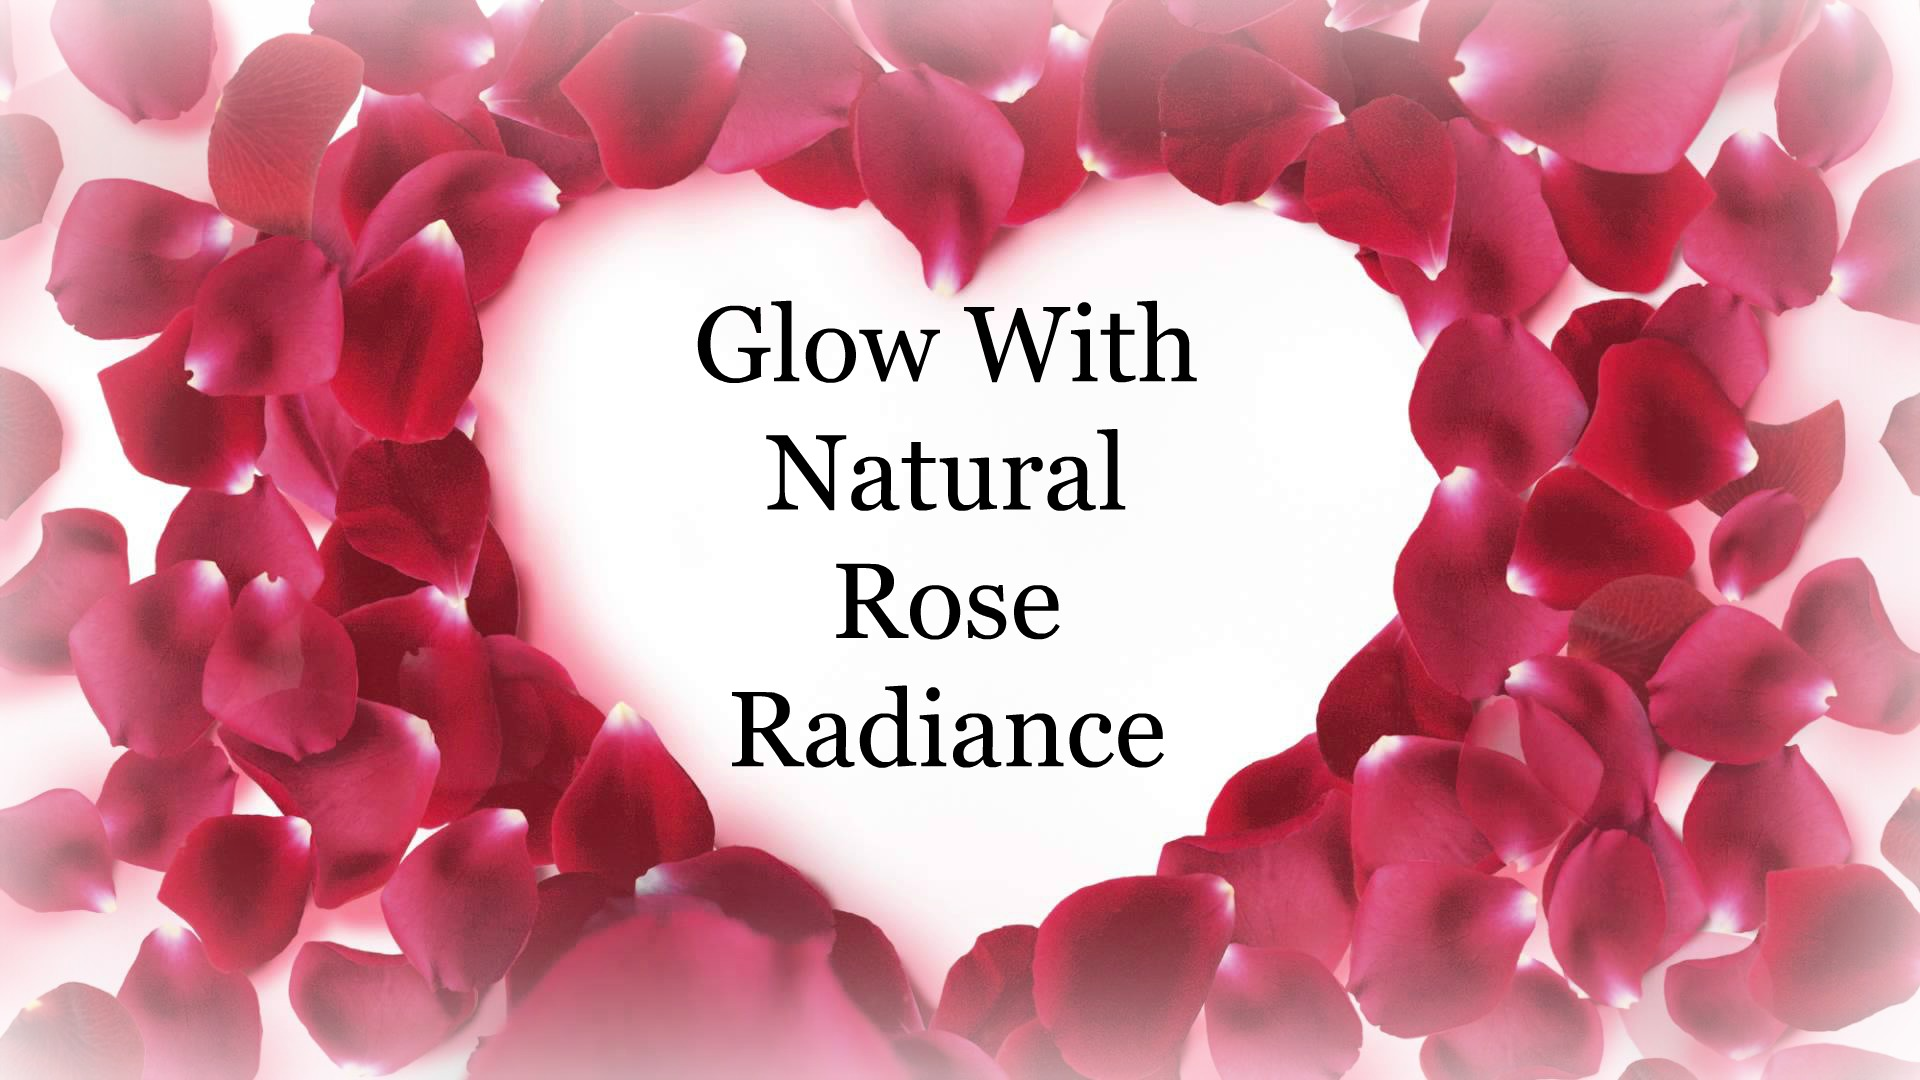 Glow With Natural Beauty